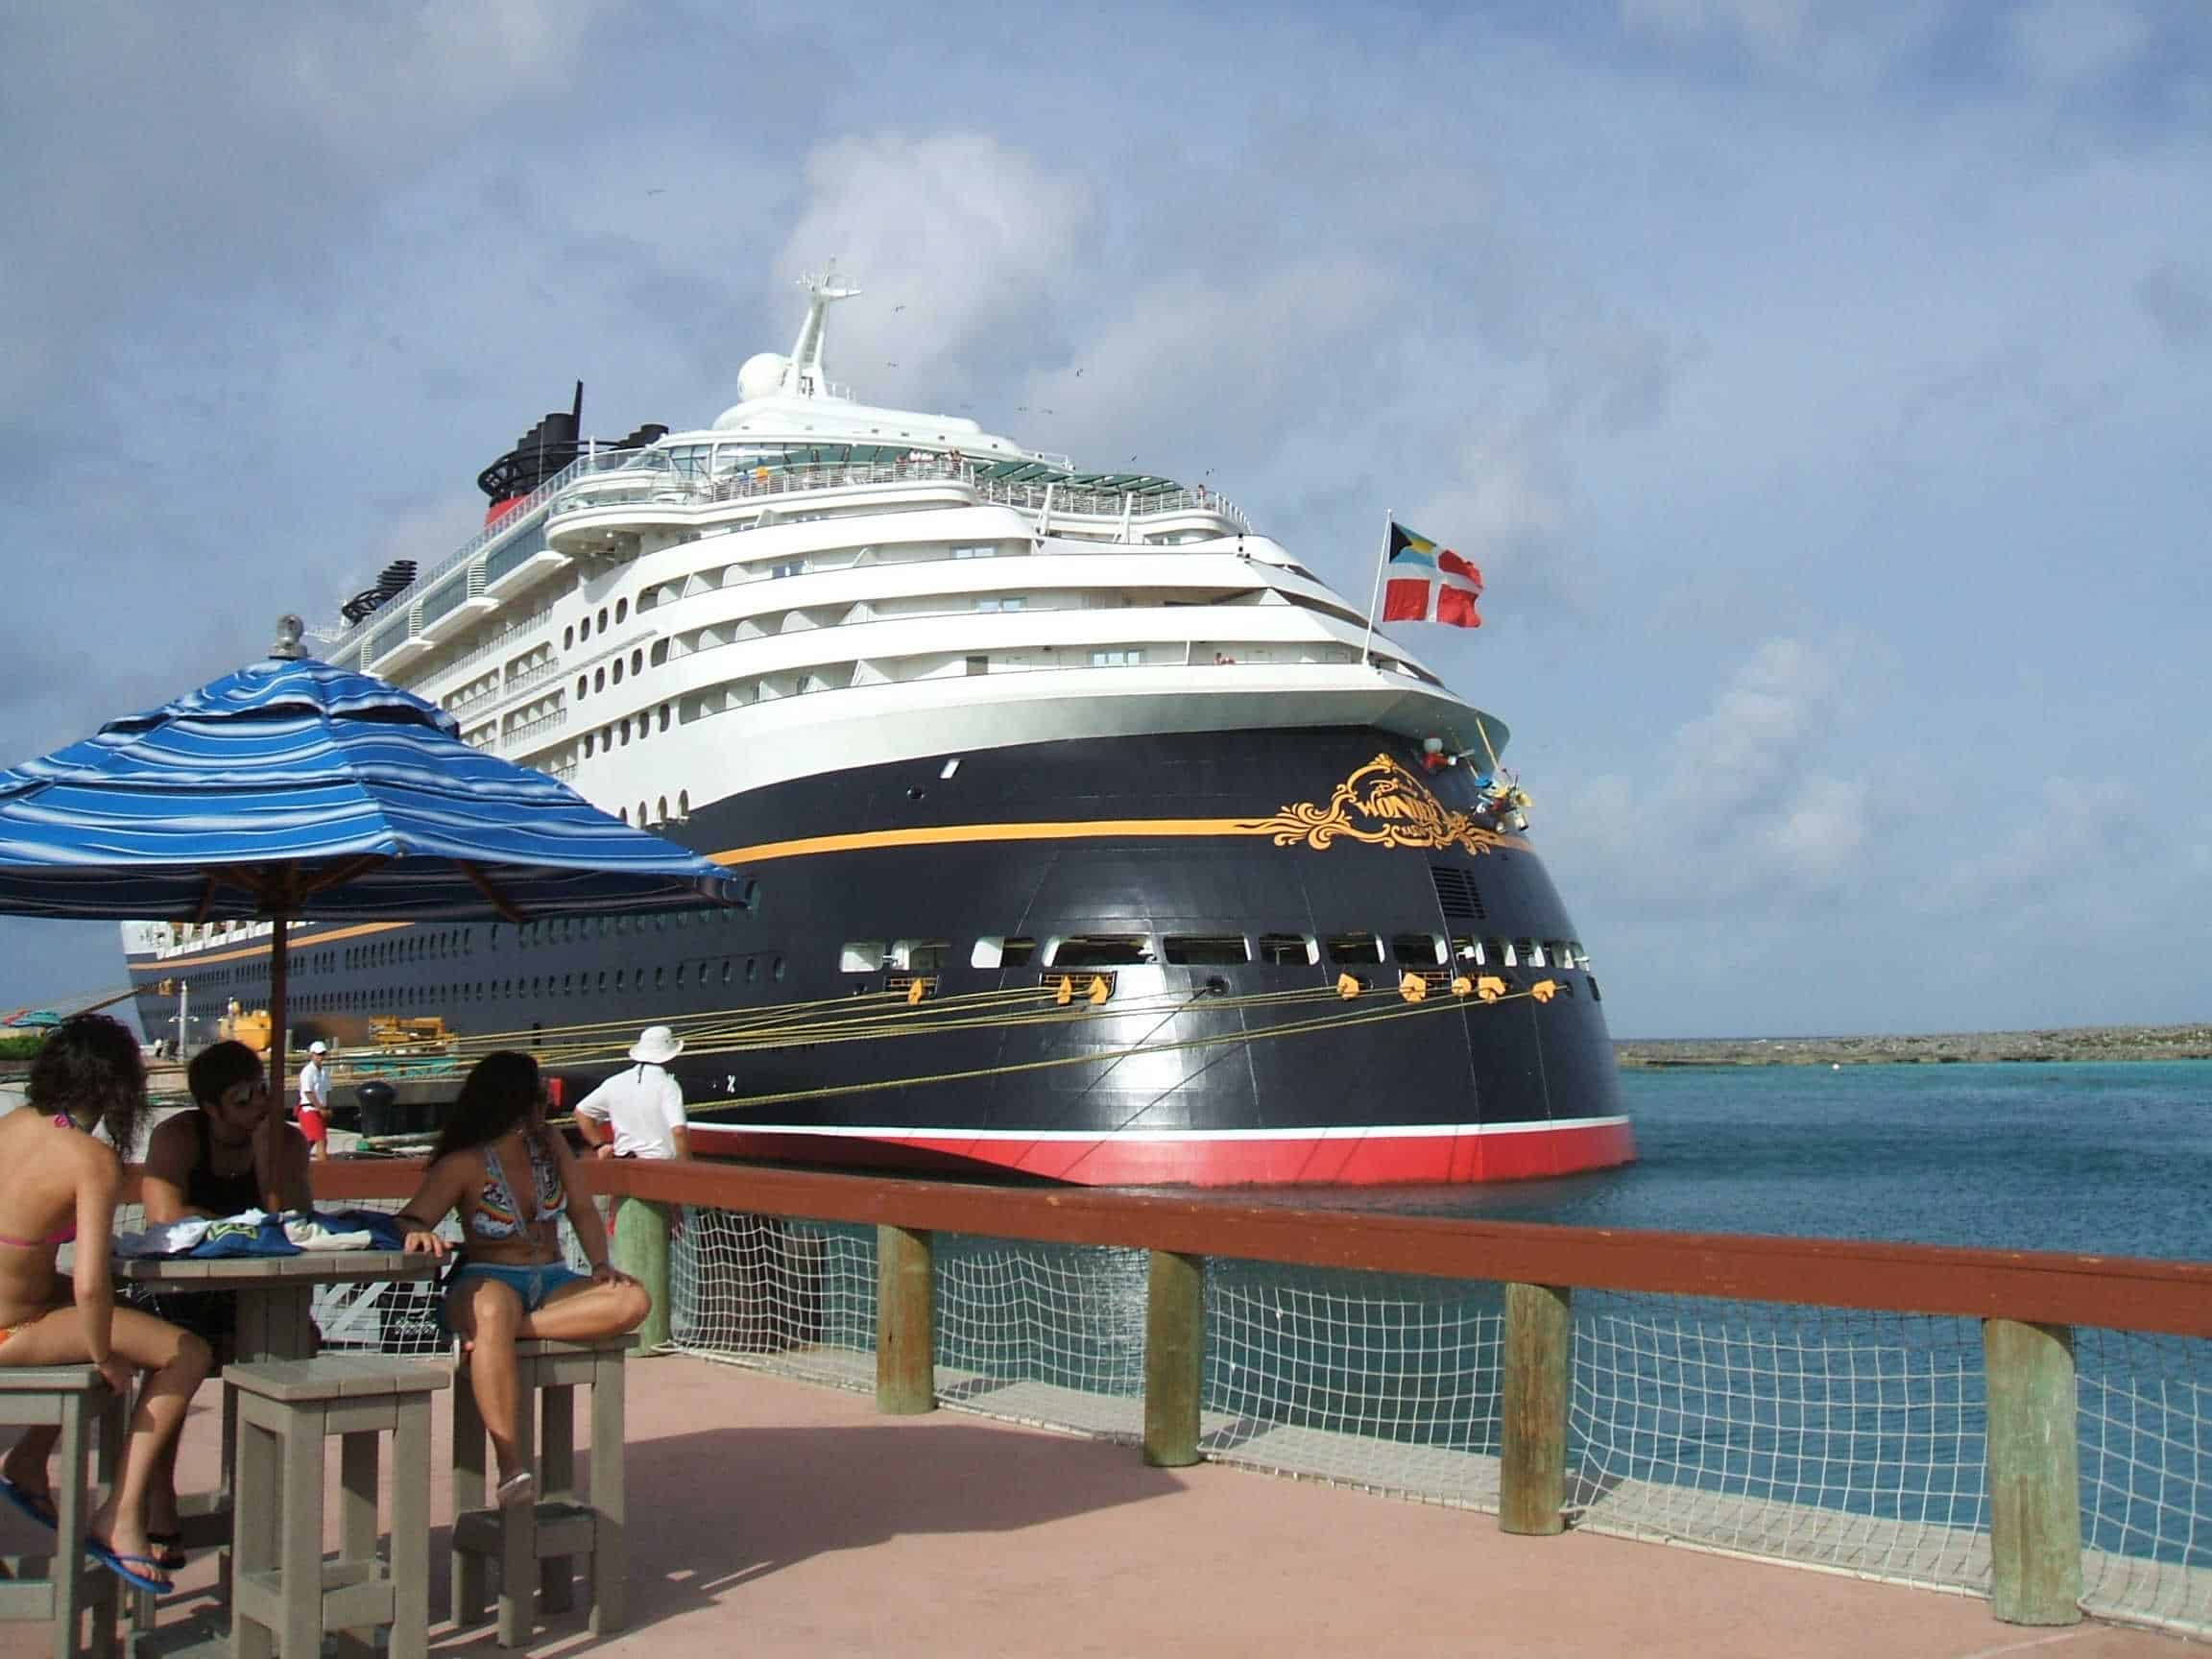 A Cruise packing list can be endless. After the basics, add these little tips and tricks to your bags for even more cruise fun